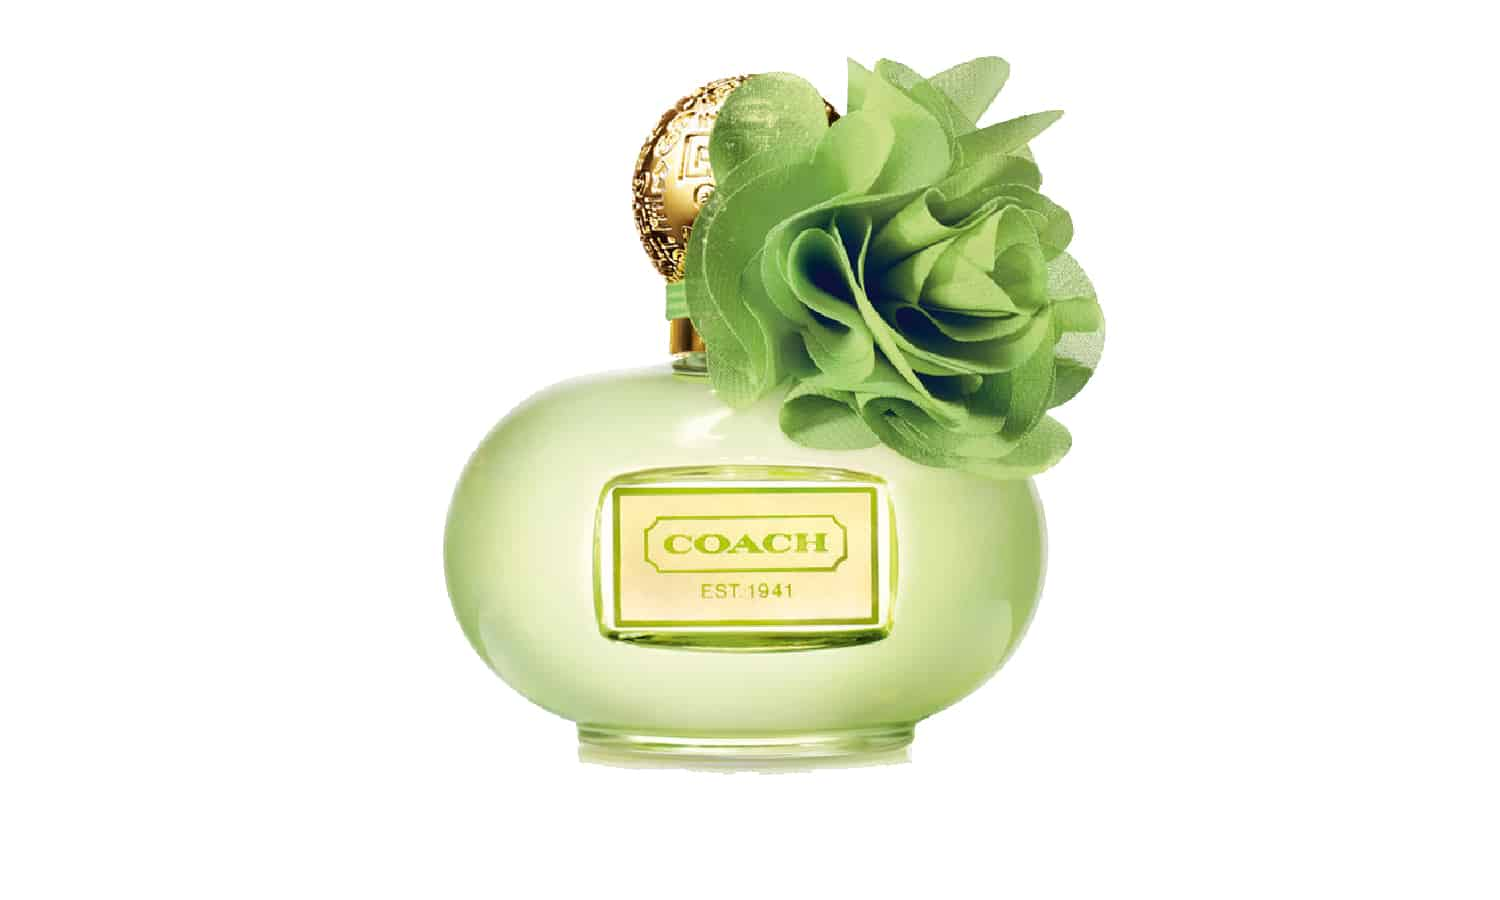 Coach Perfume in a green bottle